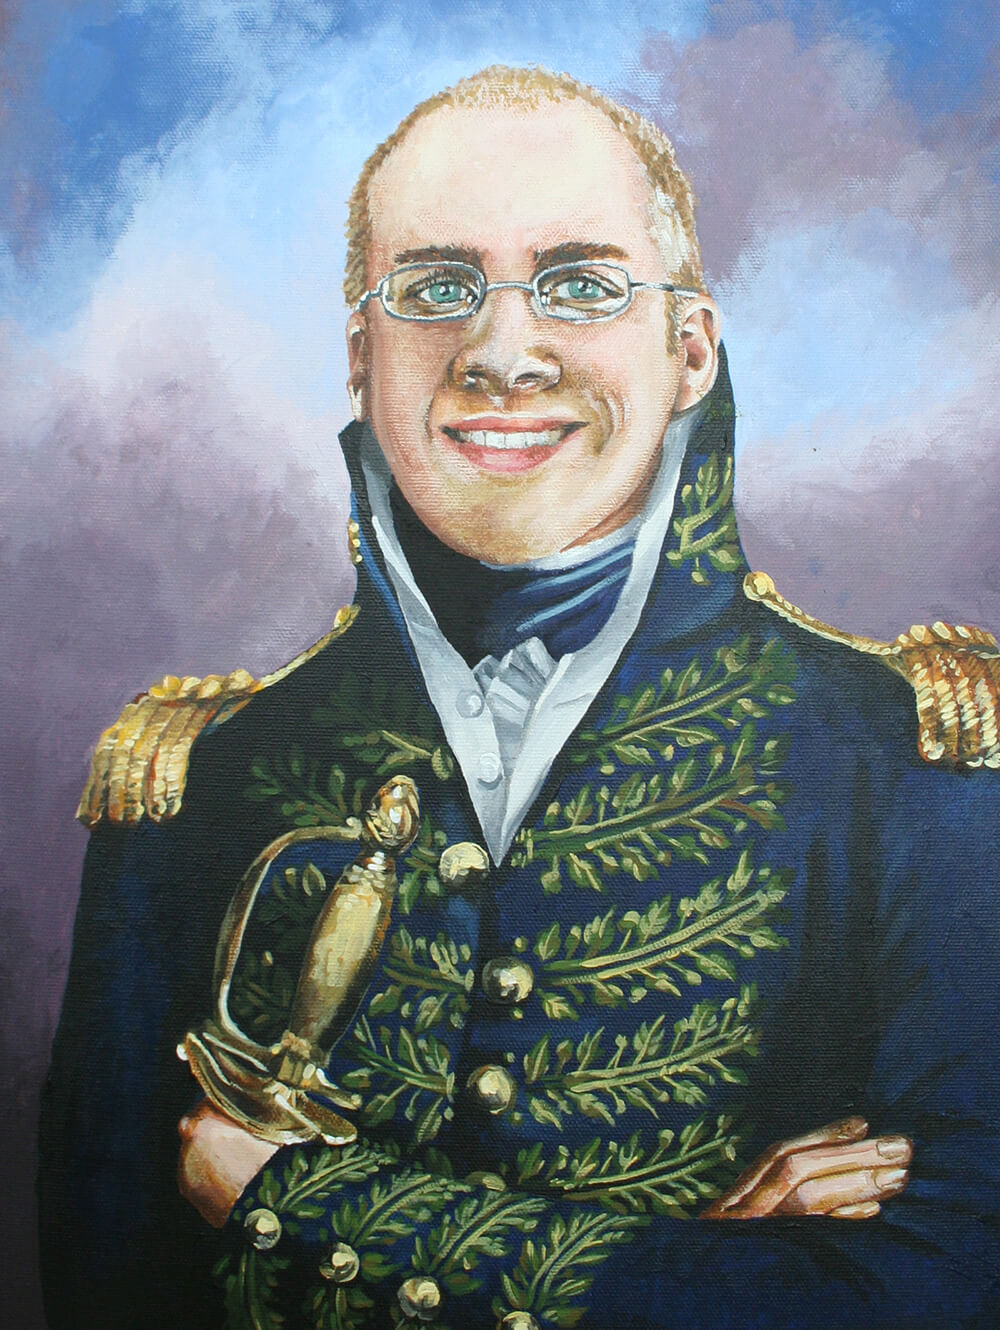 a painting of my friend Ben Heise's head on a war general's body